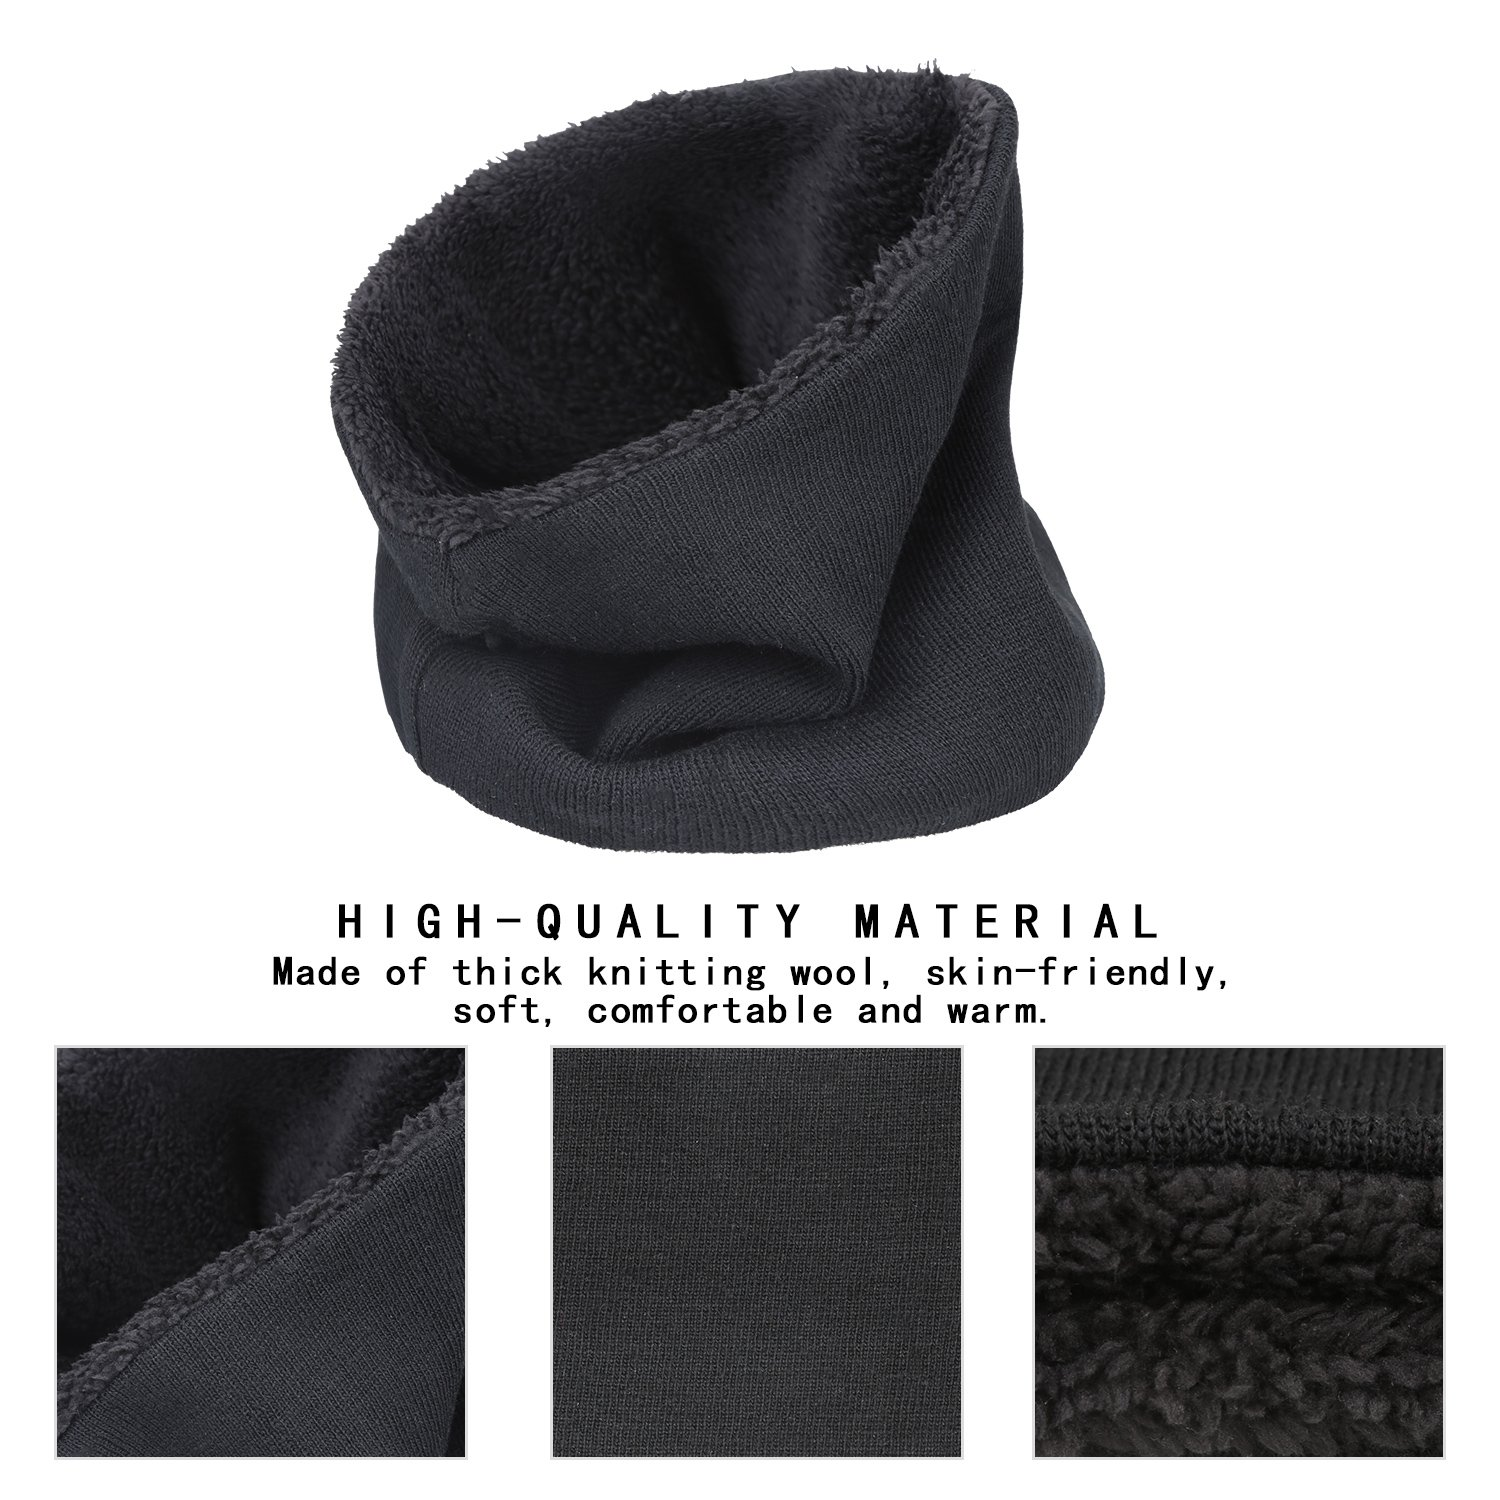 Trend Mark 2018 Fashion Winter Scarf For Women Men Children Baby Scarf Thickened Wool Collar Scarves Girls Boys Neck Scarf Cotton Unisex Terrific Value Apparel Accessories